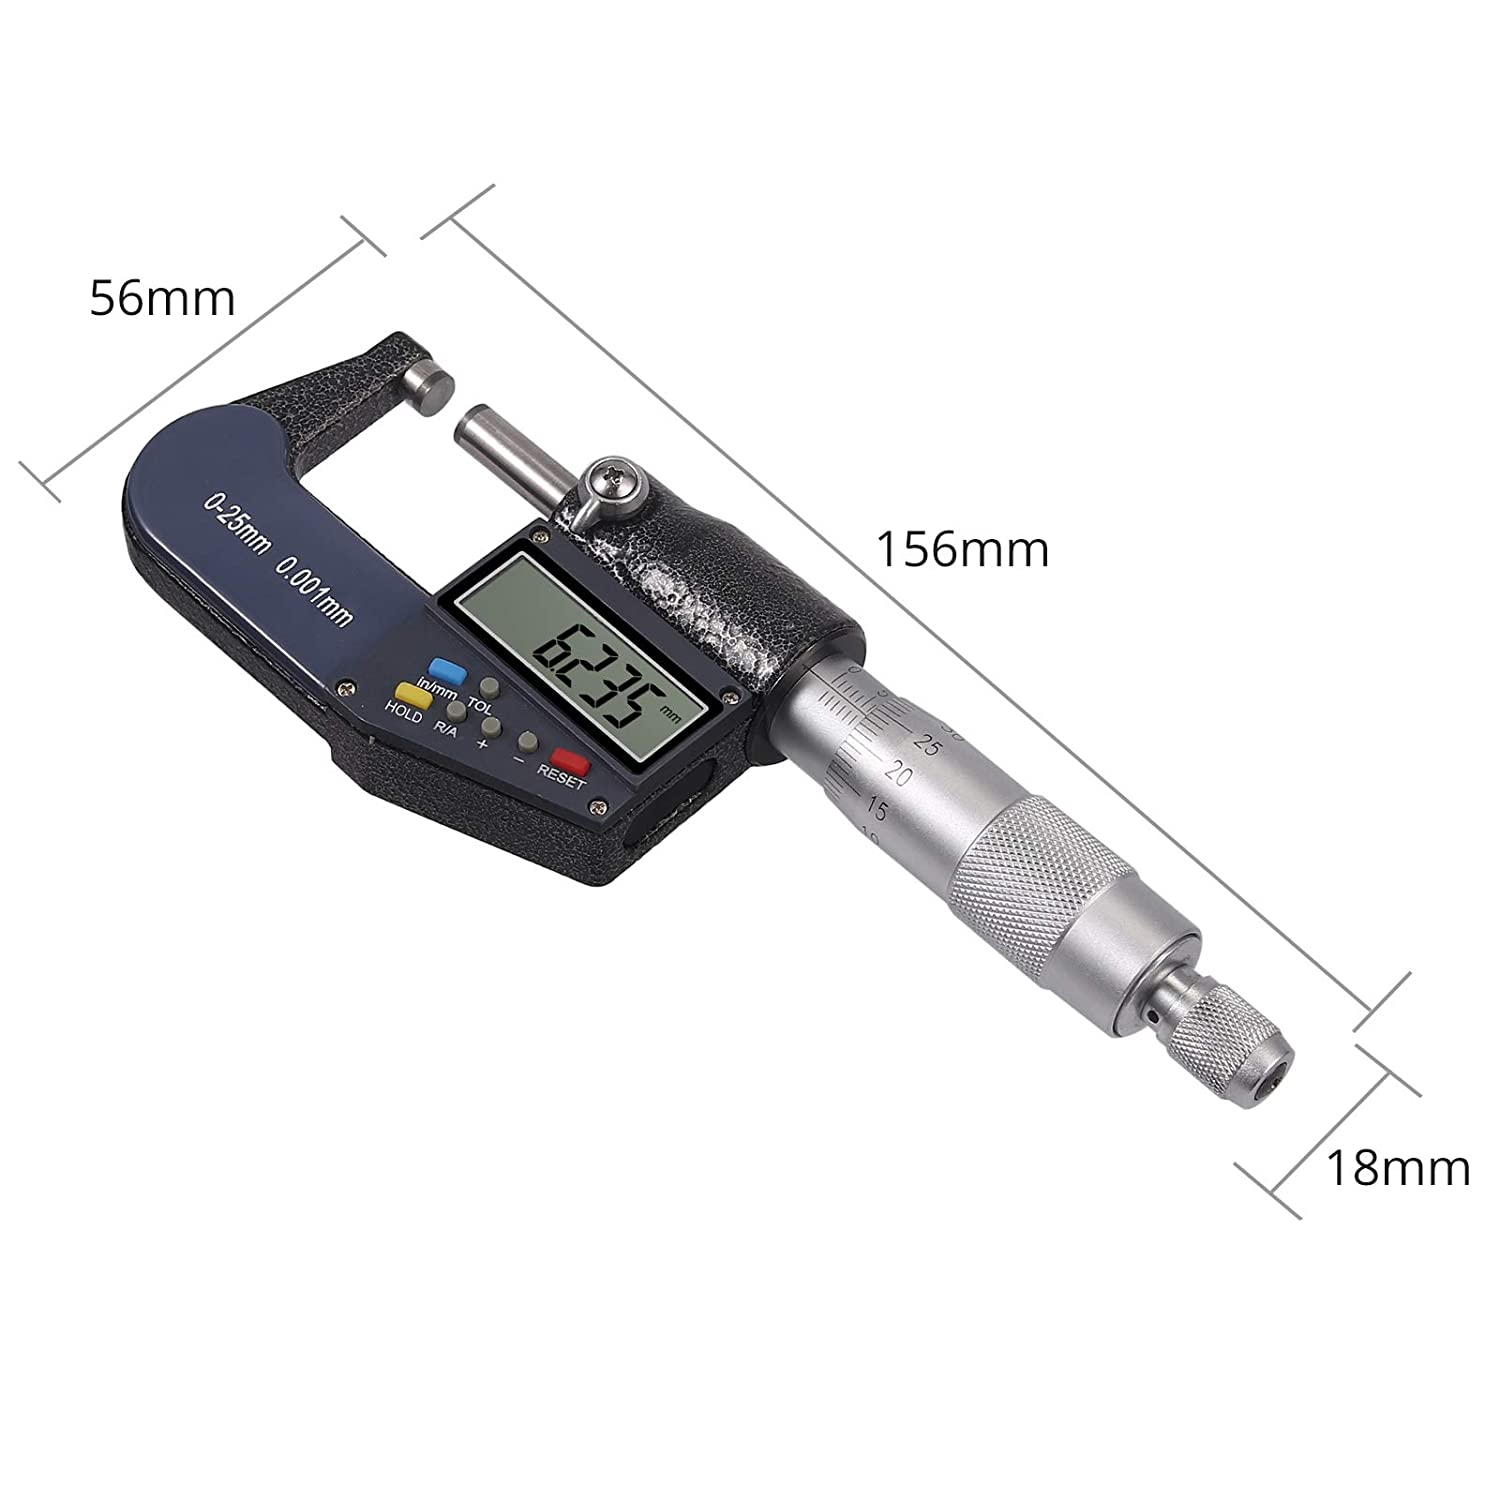 Digital Micrometer 0-1 Digital External Electronic Gauge with Absolute and Incremental Modes Digital Outside Micrometer Inch//Metric Measurement